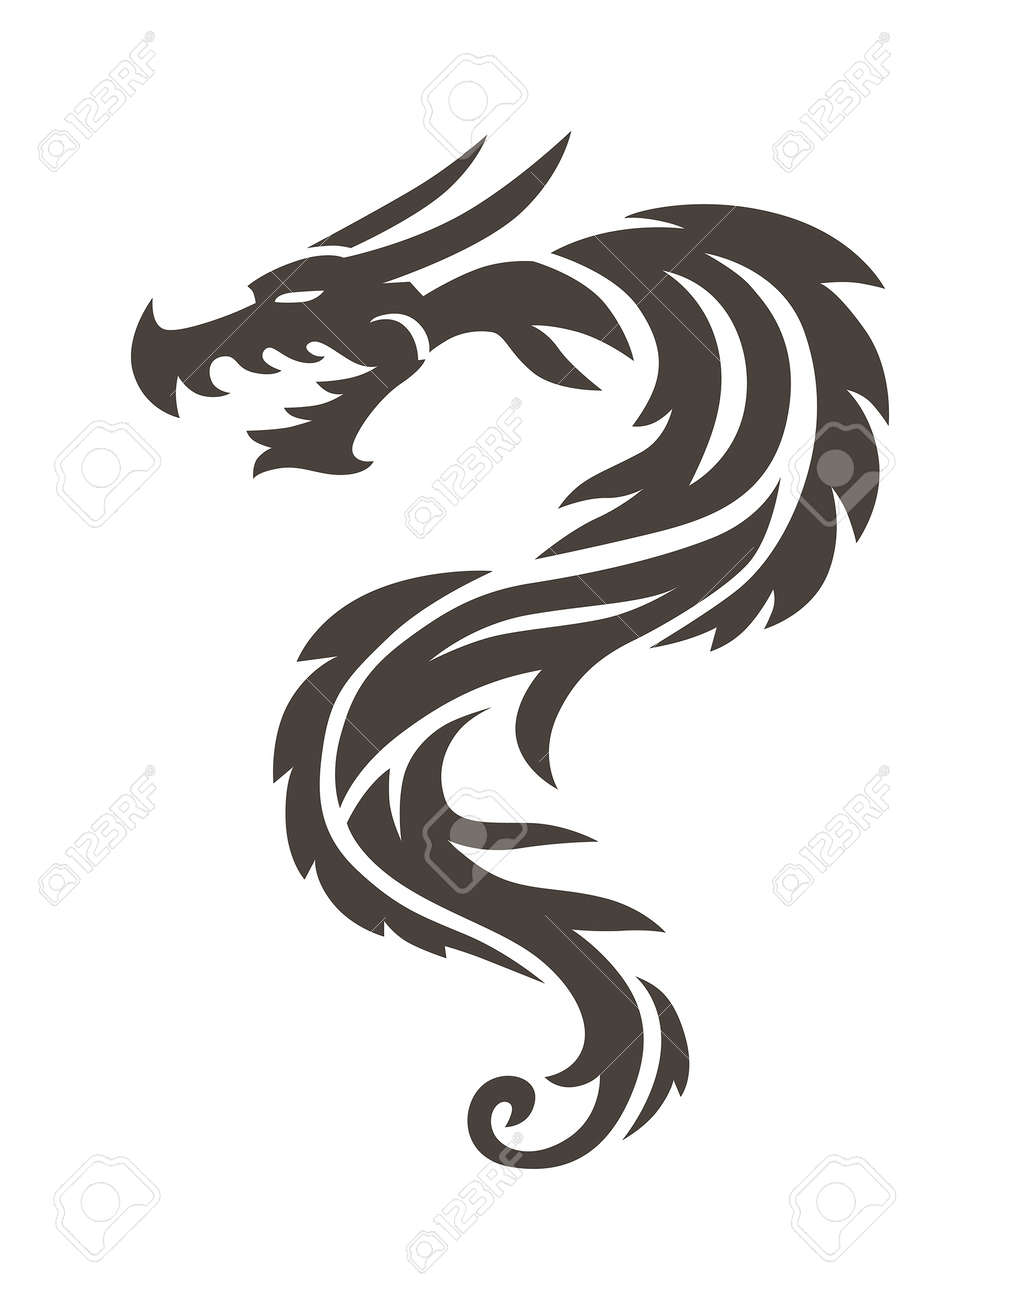 Dragon tattoo white background vector illustration vector chinese dragon tattoo white background vector illustration vector chinese dragon for the tattoo chinese dragon biocorpaavc